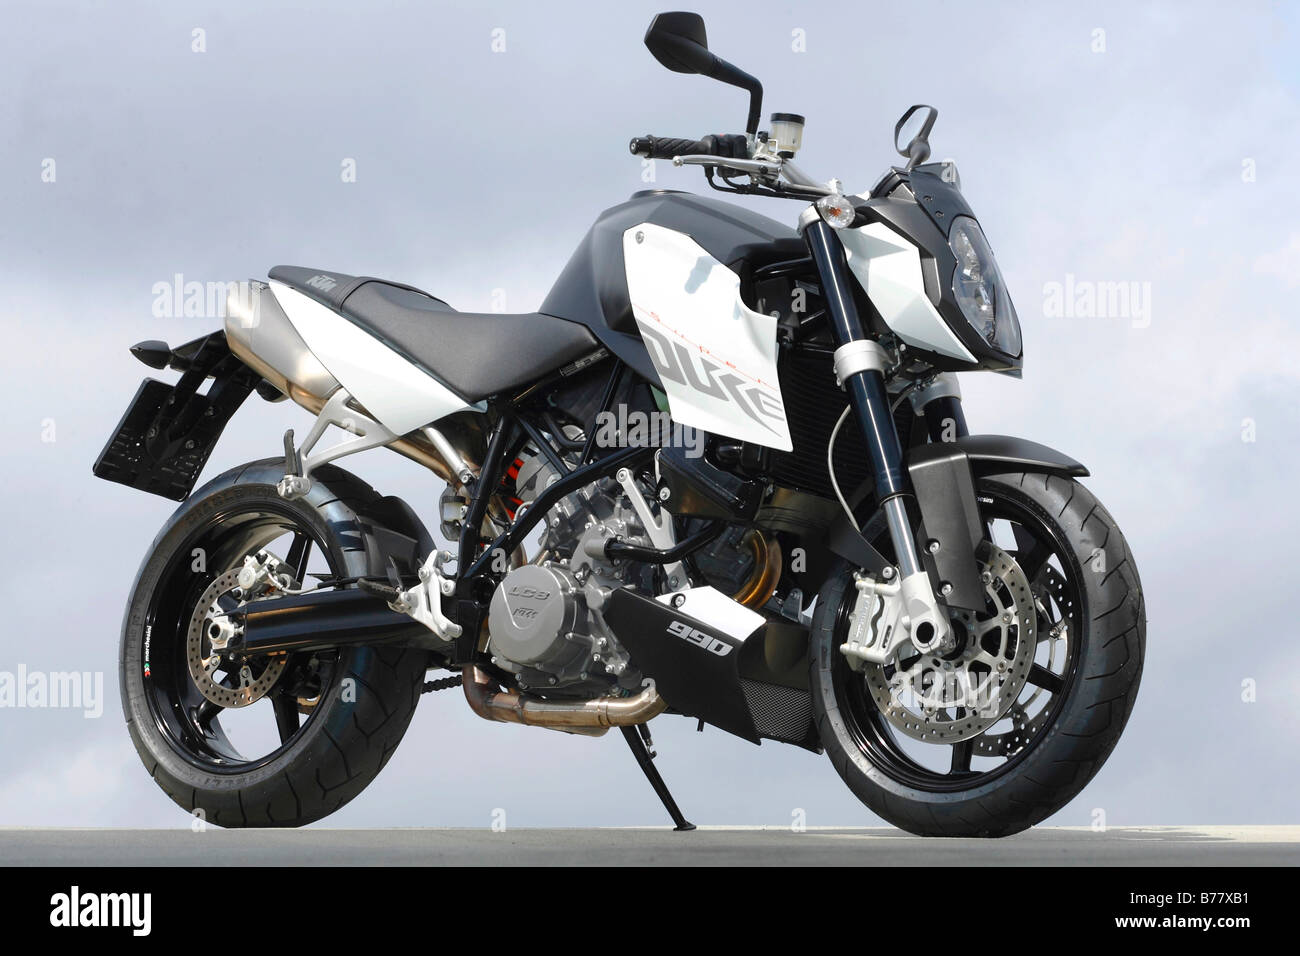 Motorcycle, KTM 990 Super Duke - Stock Image